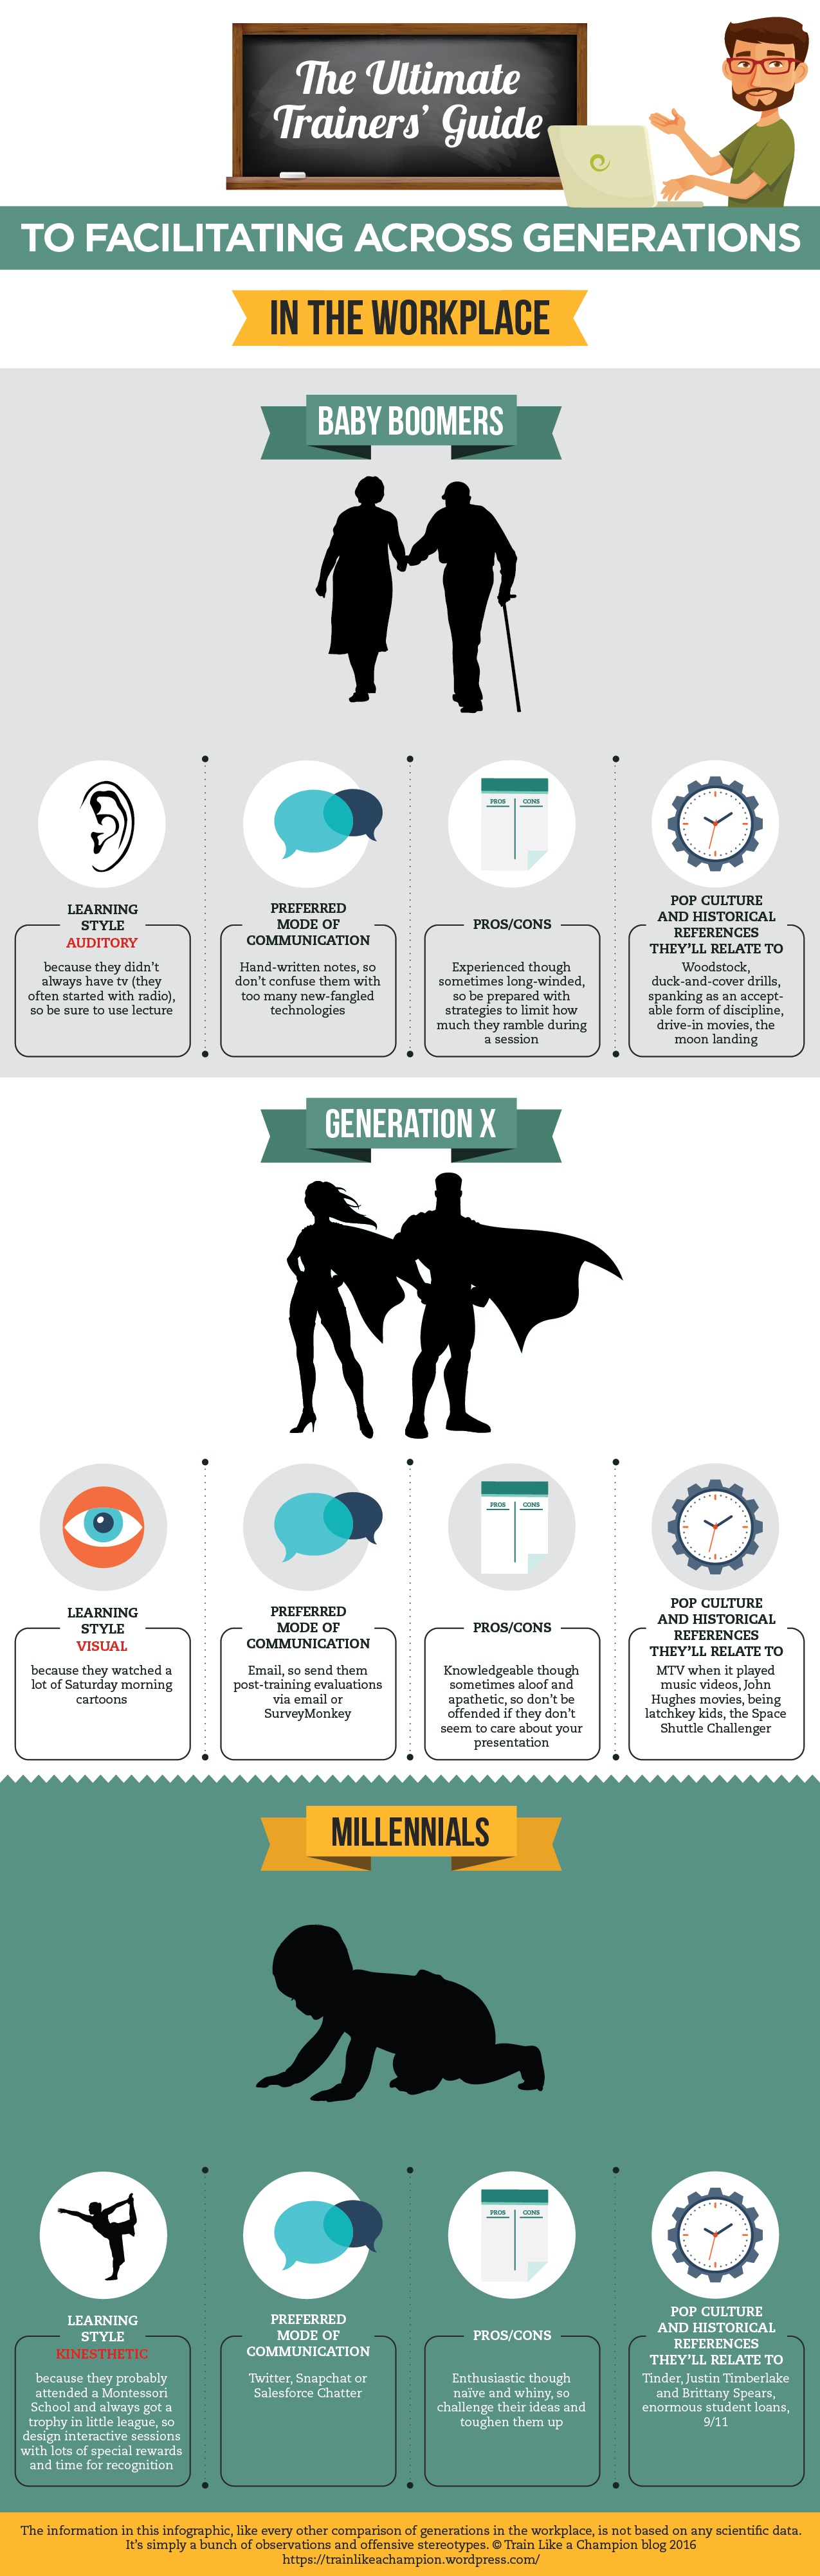 get off my lawn millennials an infographic for training an infographic for training different generations in the workplace train like a champion